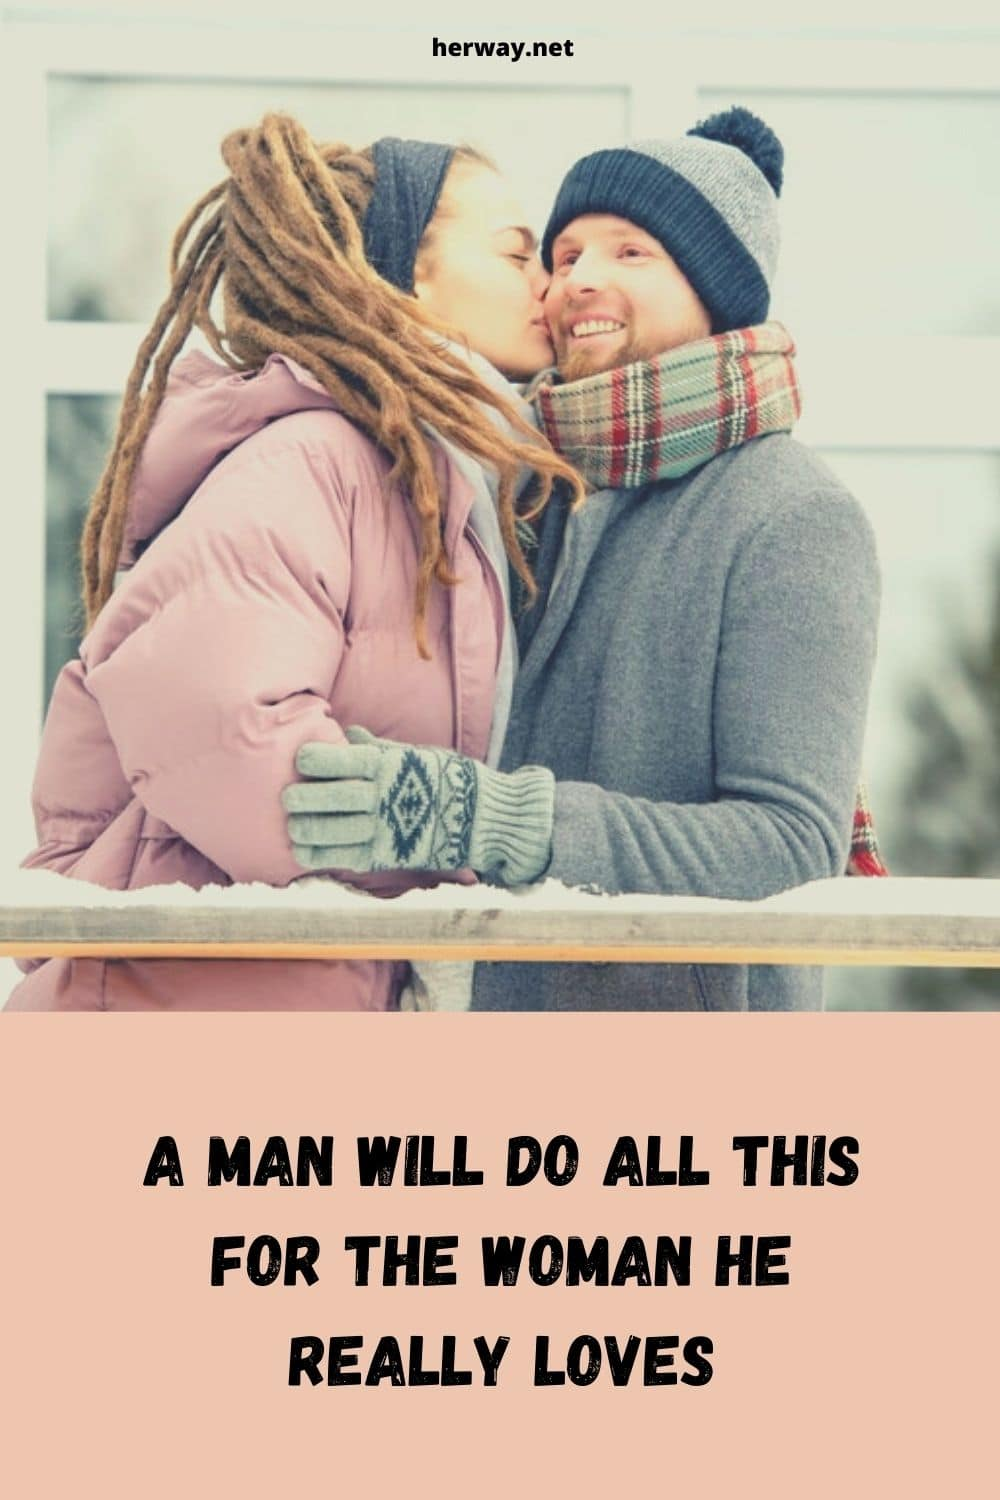 A Man Will Do ALL THIS for the Woman He really Loves